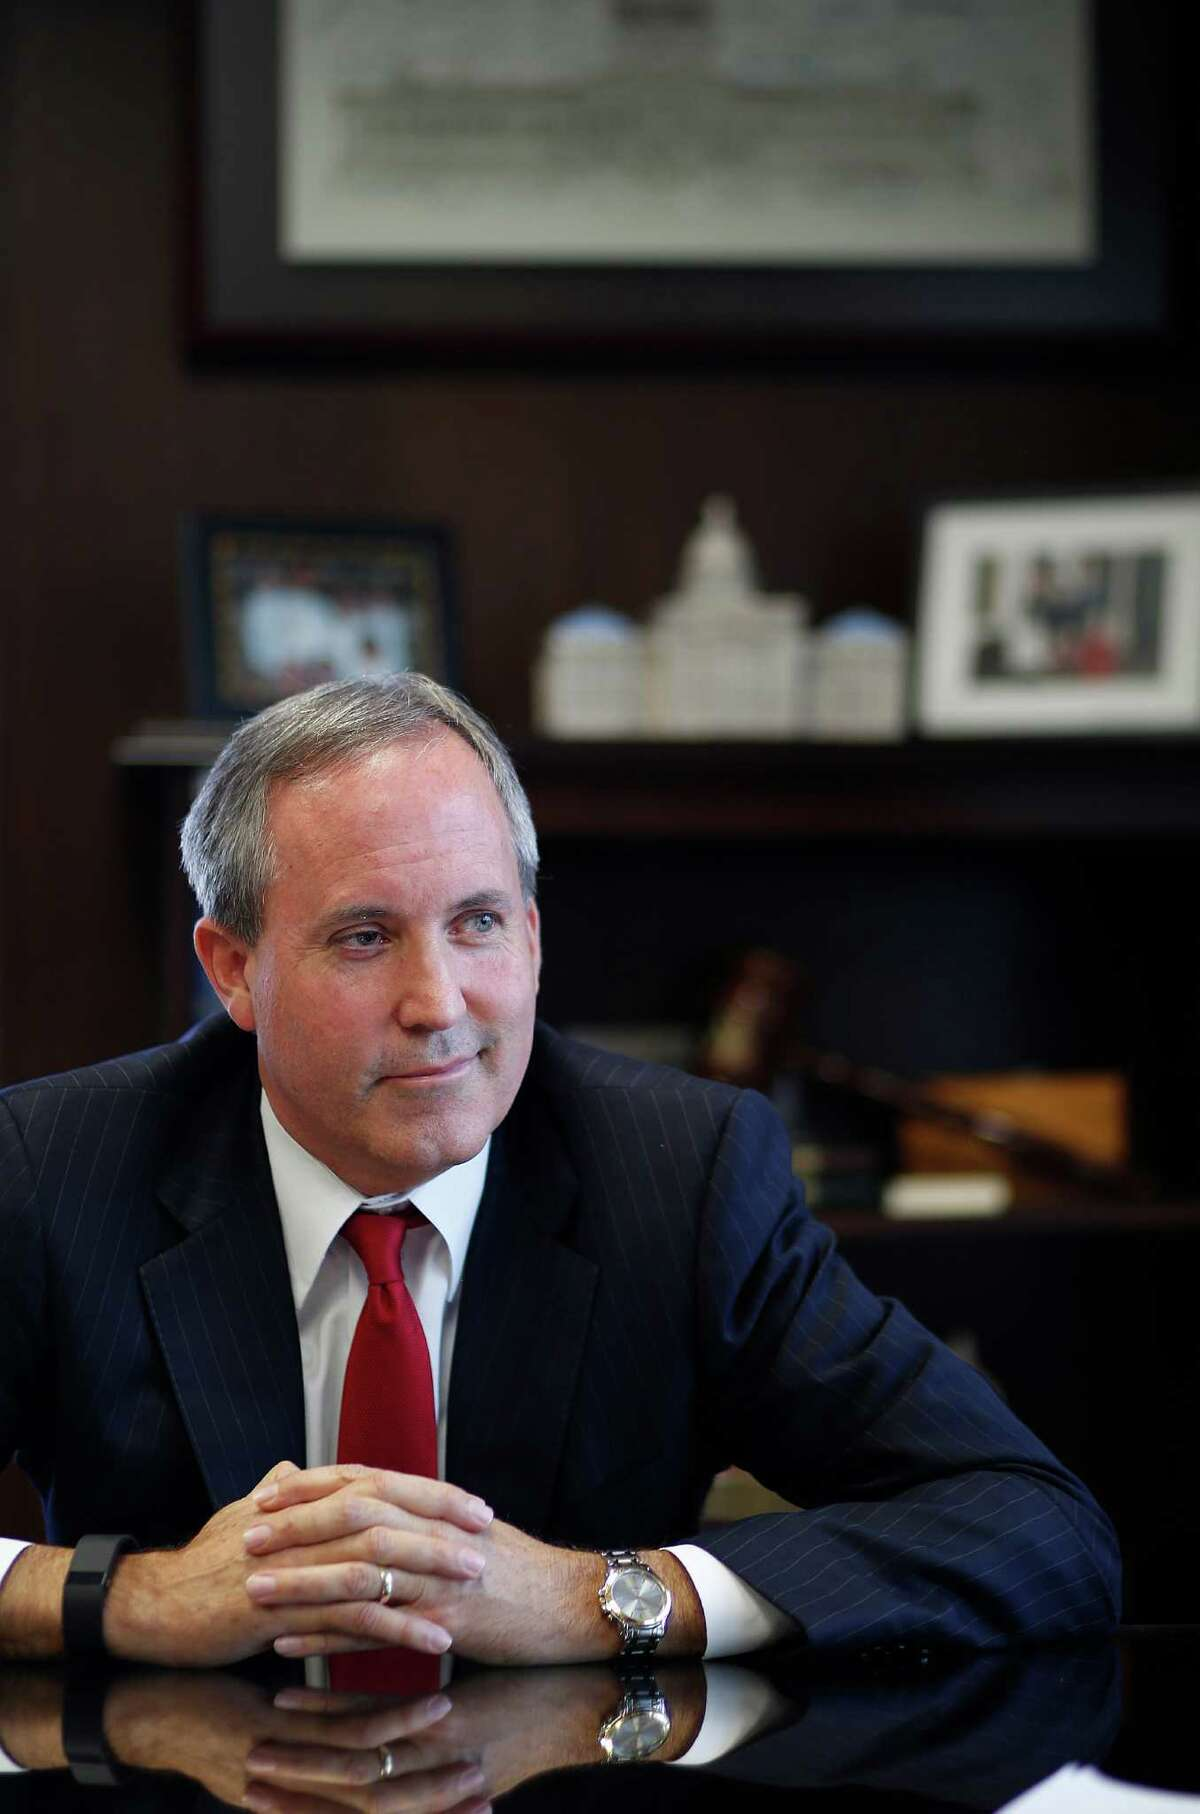 Texas Attorney General Ken Paxton is shown at his Austin office on Wednesday. He said on Friday he was